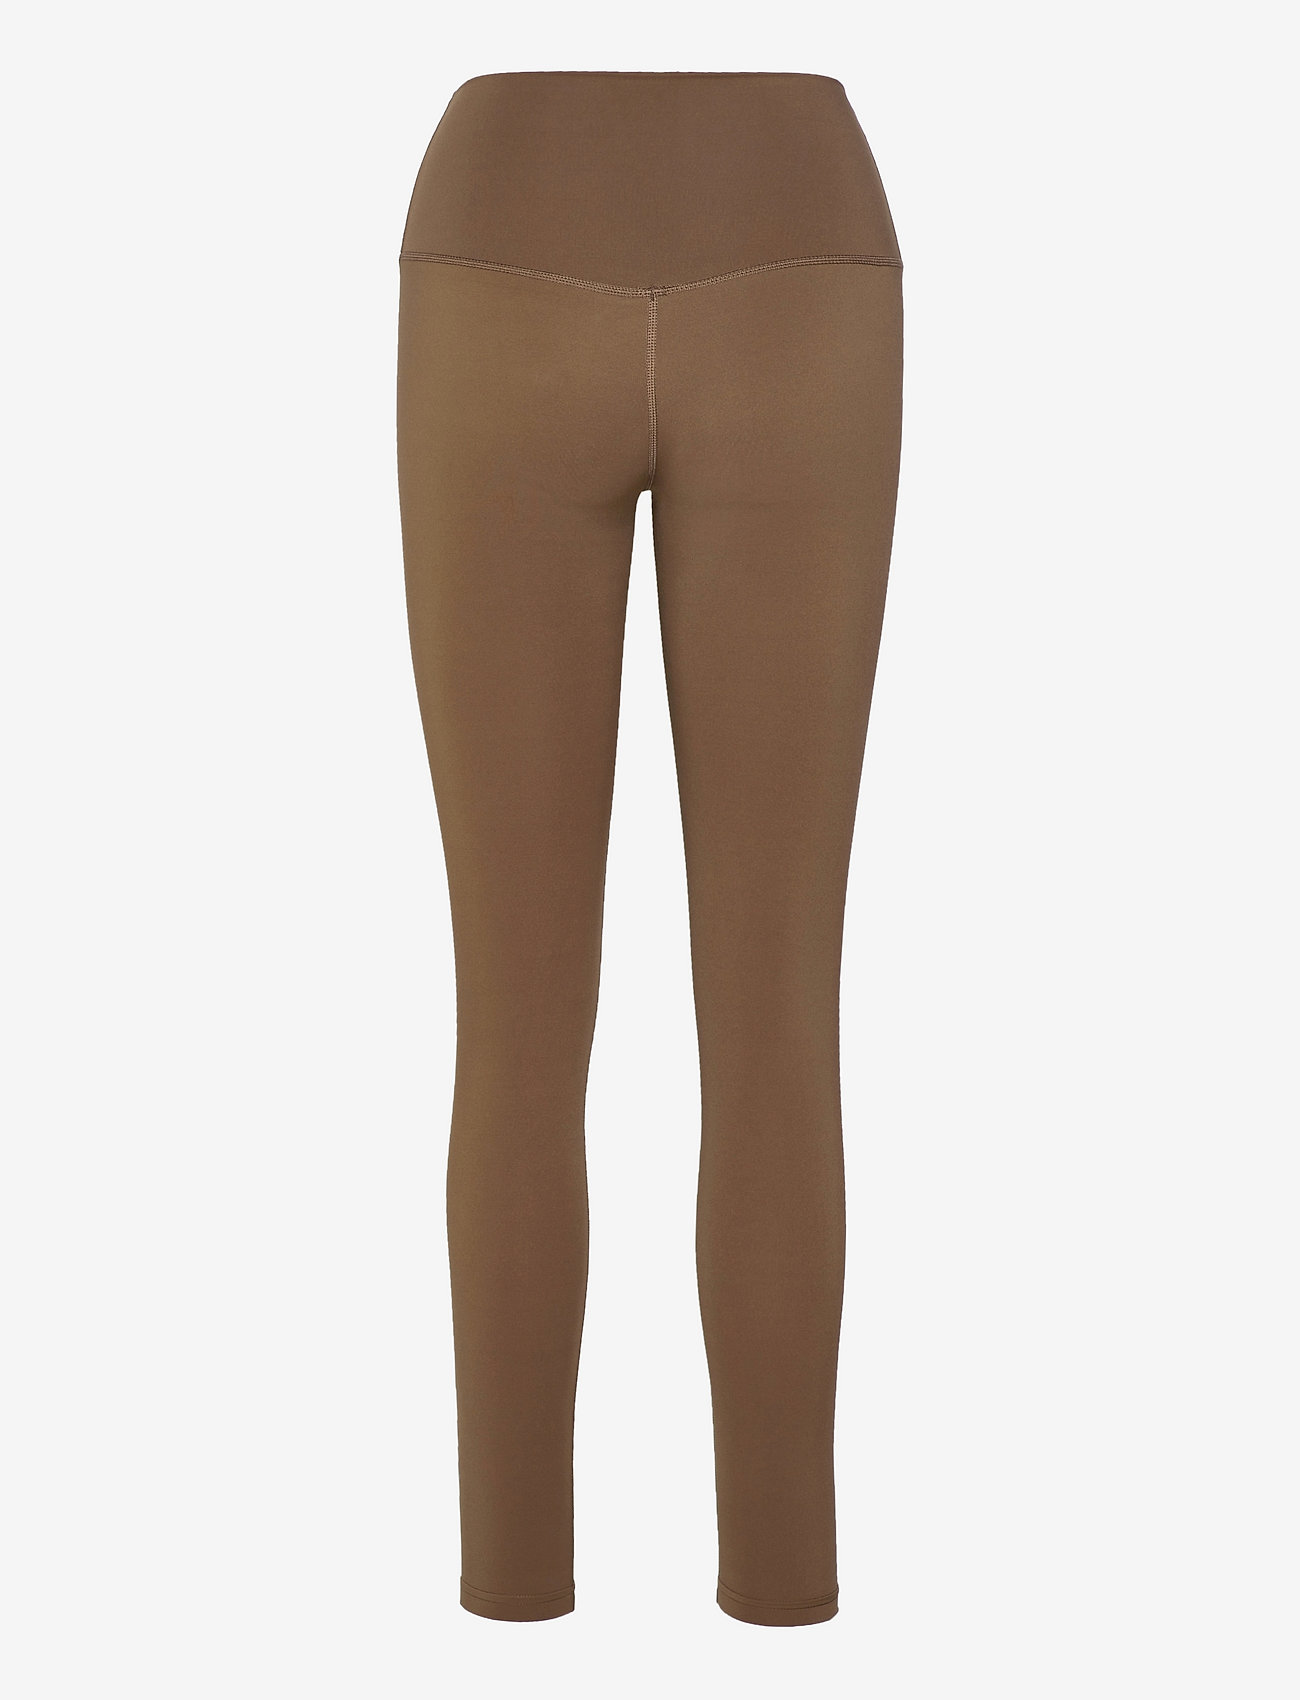 HALO - HALO WOMENS HIGHRISE TIGHTS - tights & shorts - vintage brown - 2